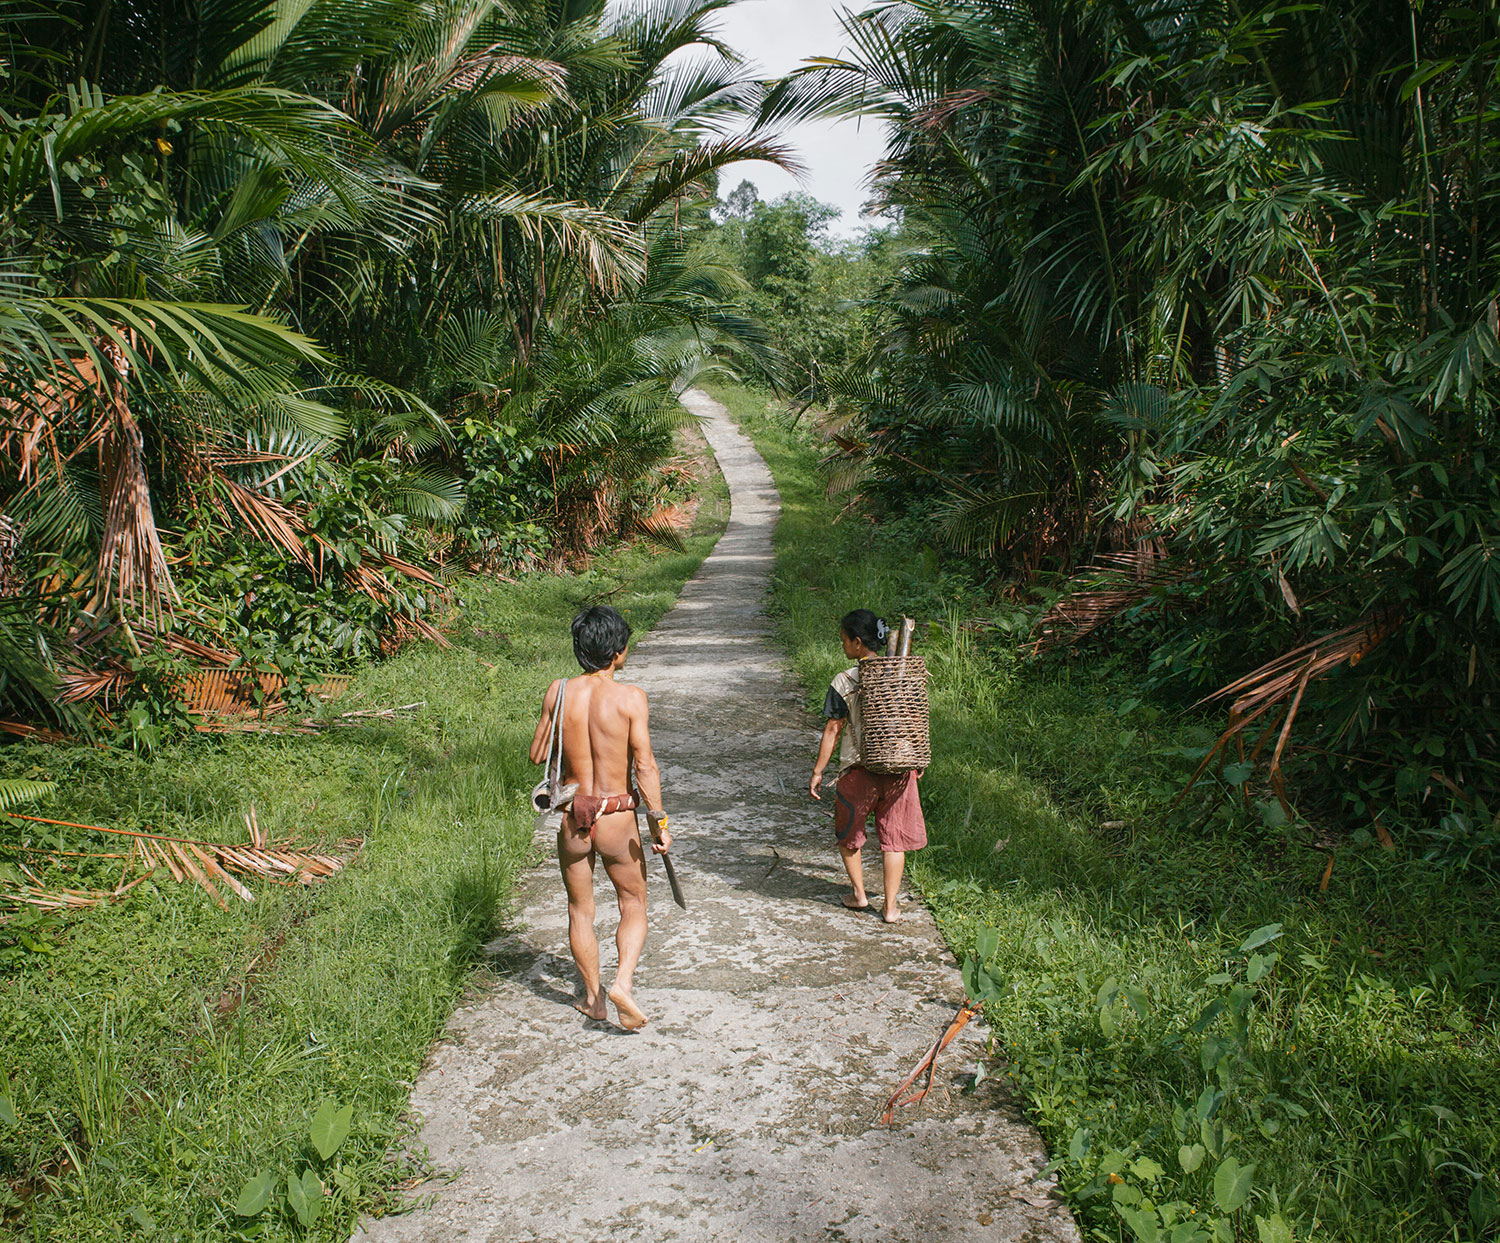 New concrete pathway connects villages at the Siberut interior.